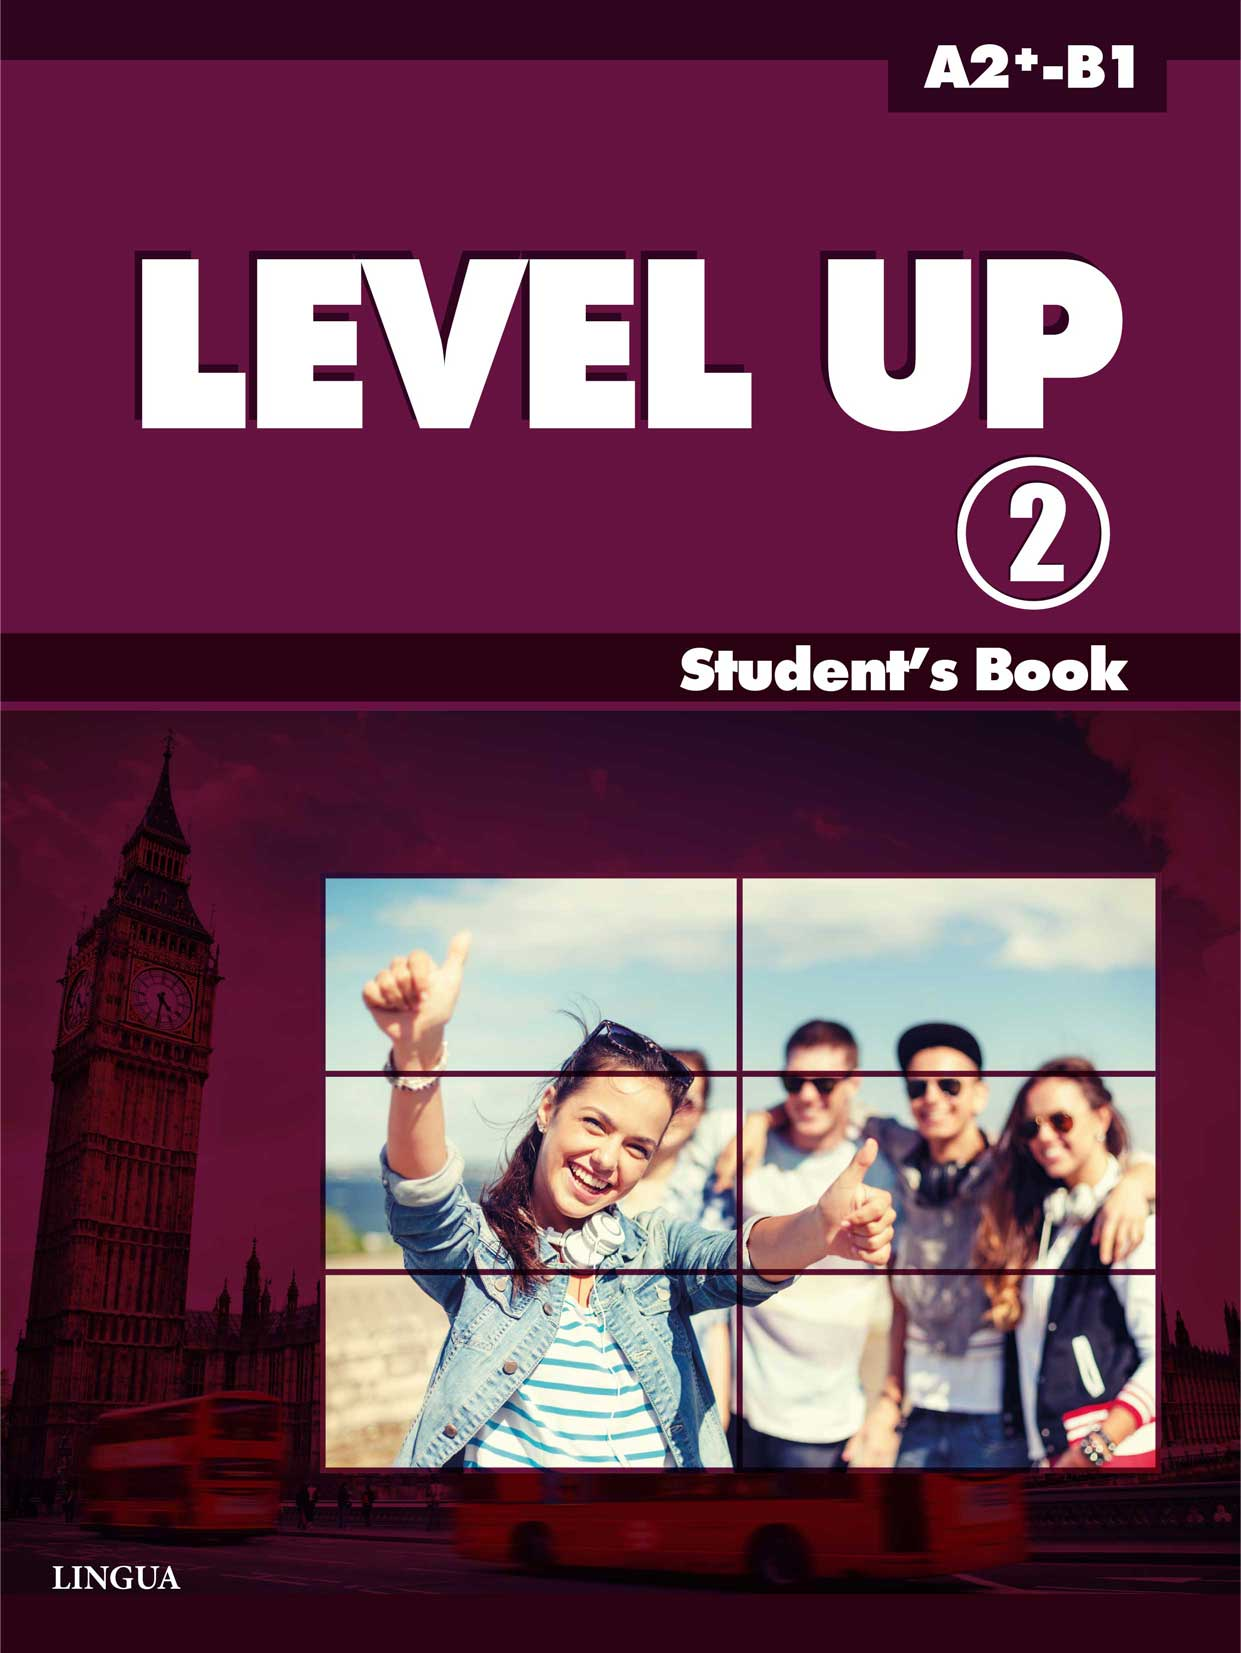 levelup2